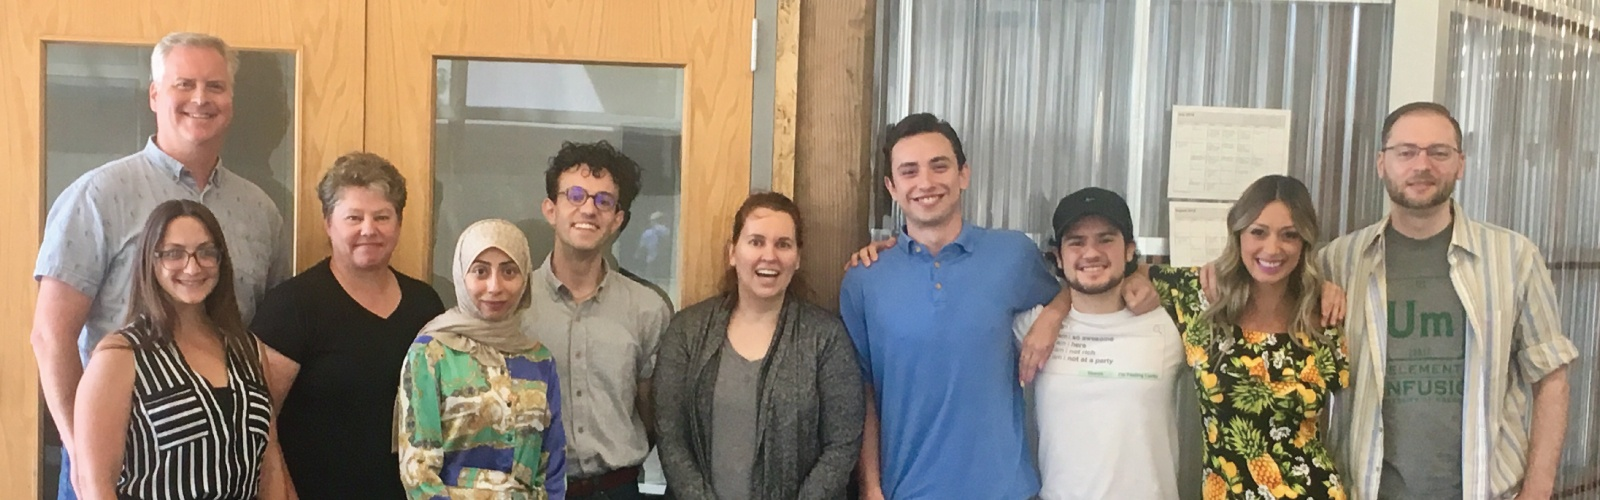 Group photo of UO's first Lean Launchpad cohort